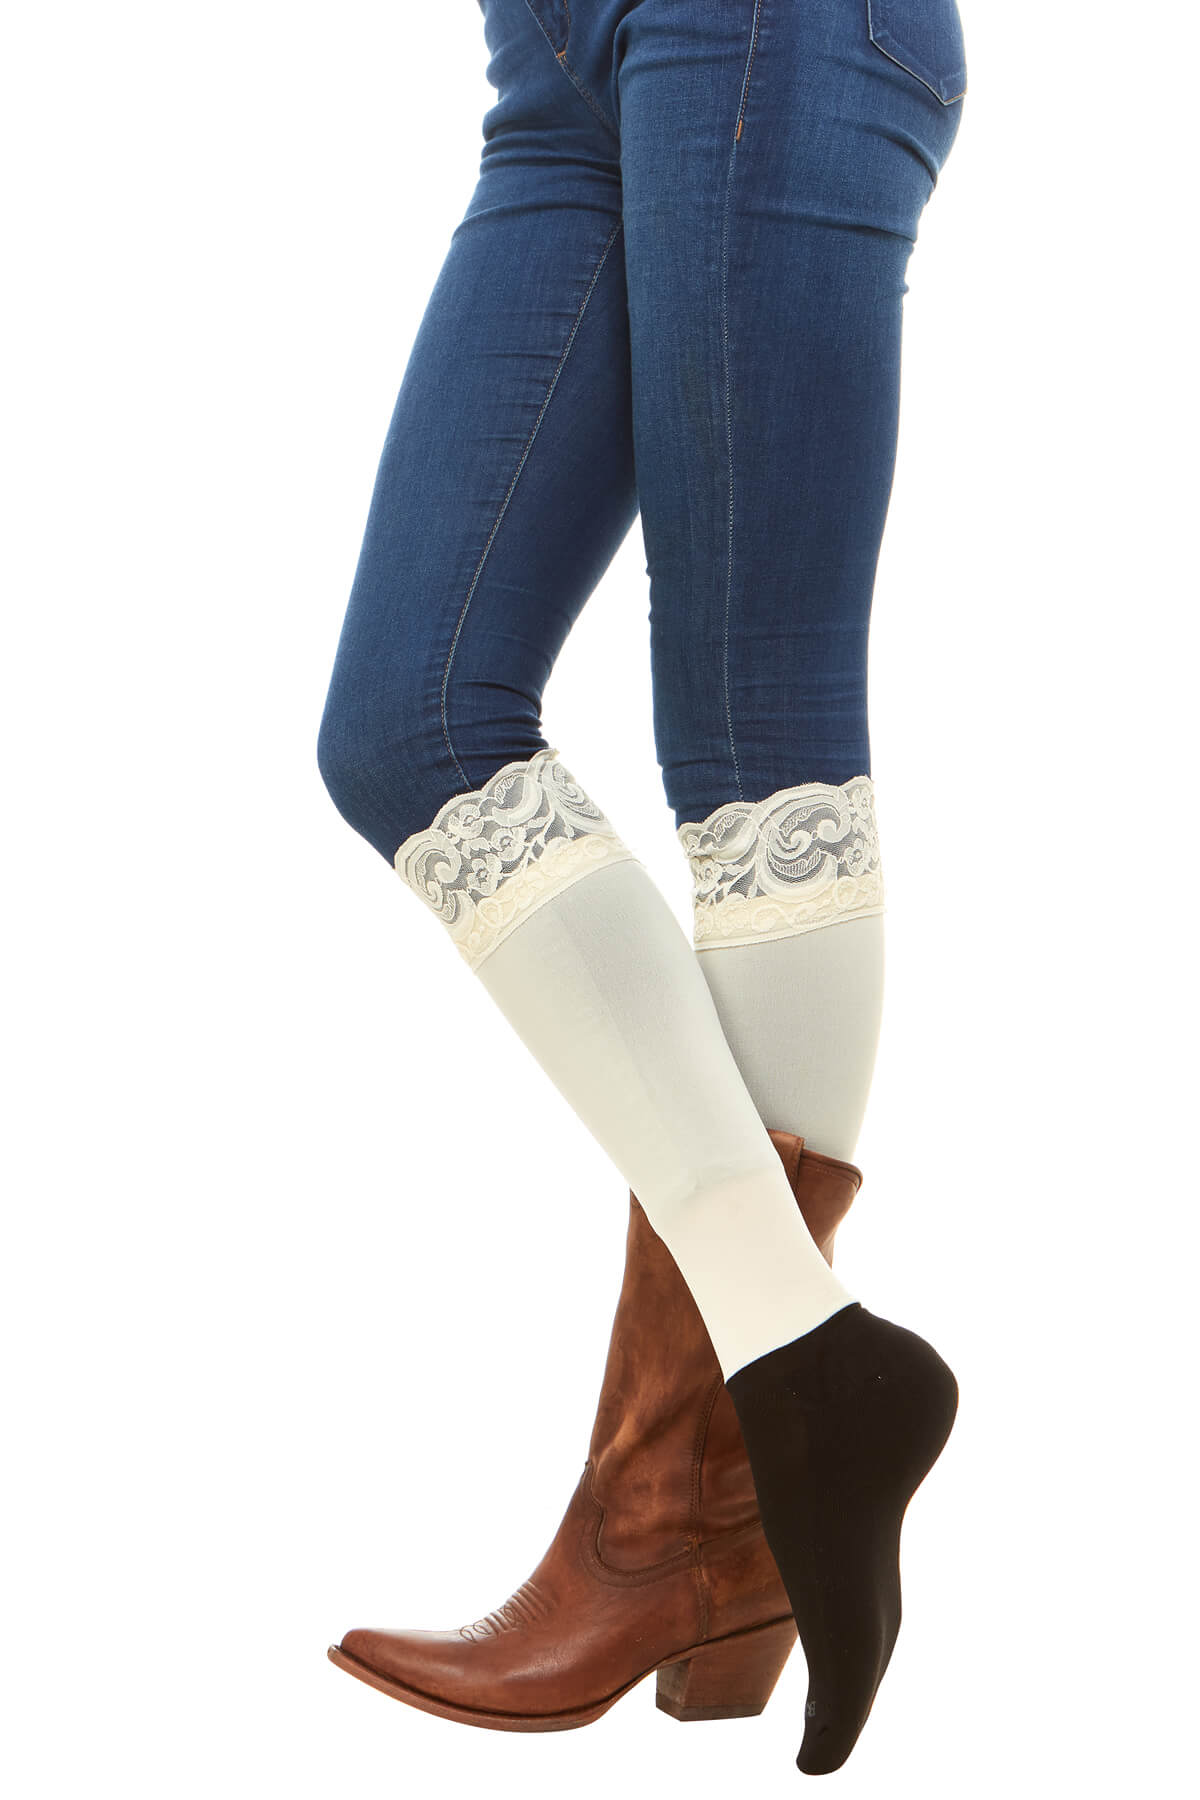 Sleek Compression sock design with lace cuff detail. Perfect for rainboots and cowboy boots.Sleek Compression sock design with lace cuff detail with attached performance athletic sock . Perfect for rain boots and cowboy boots.